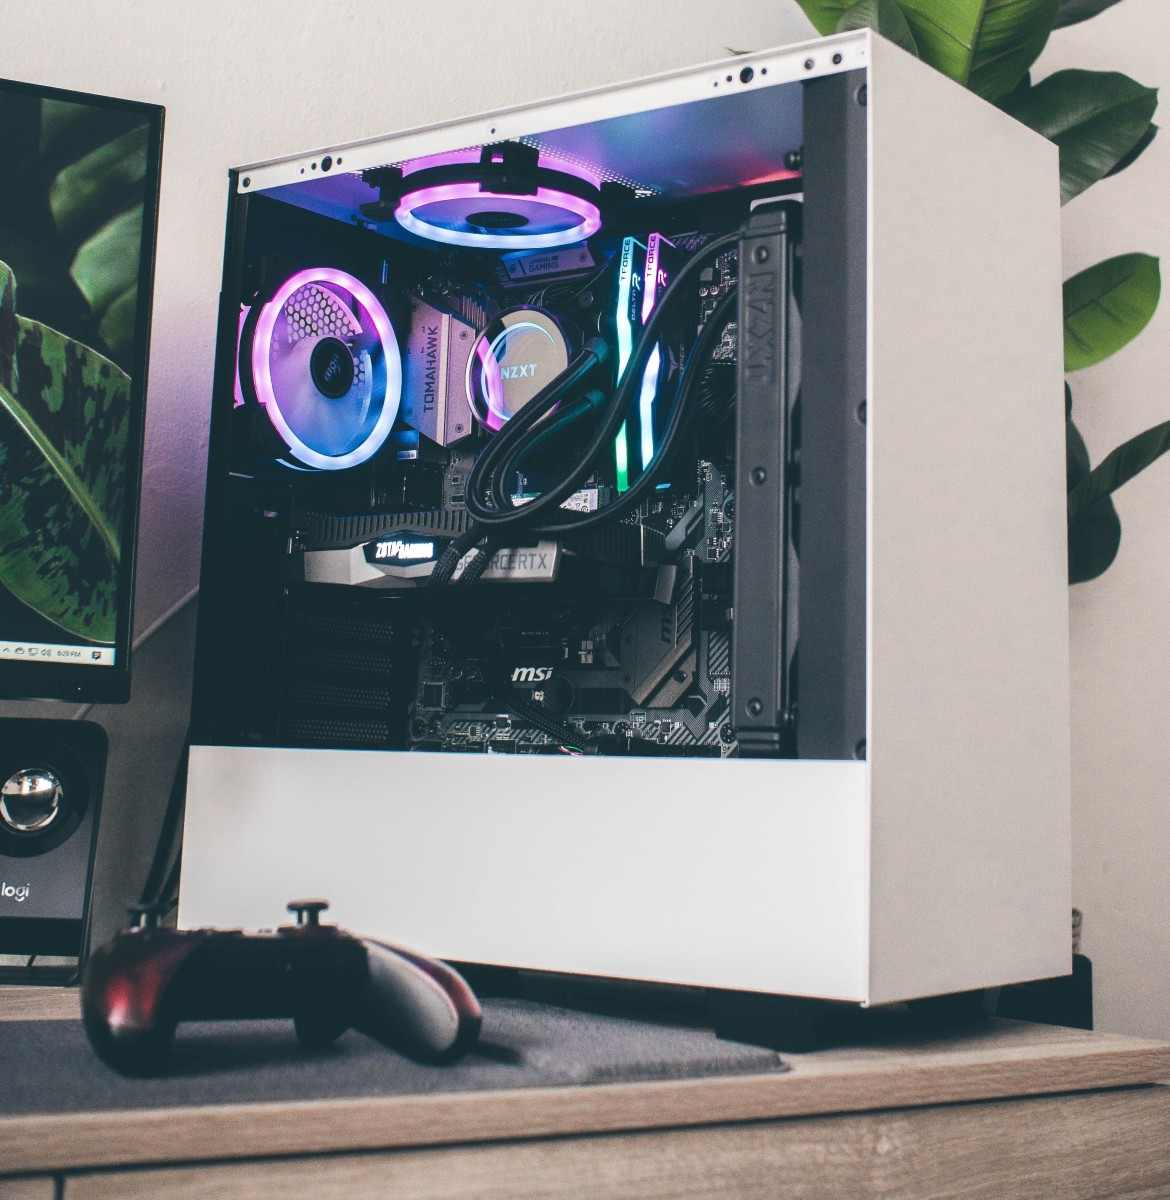 Should you build or buy a gaming PC?